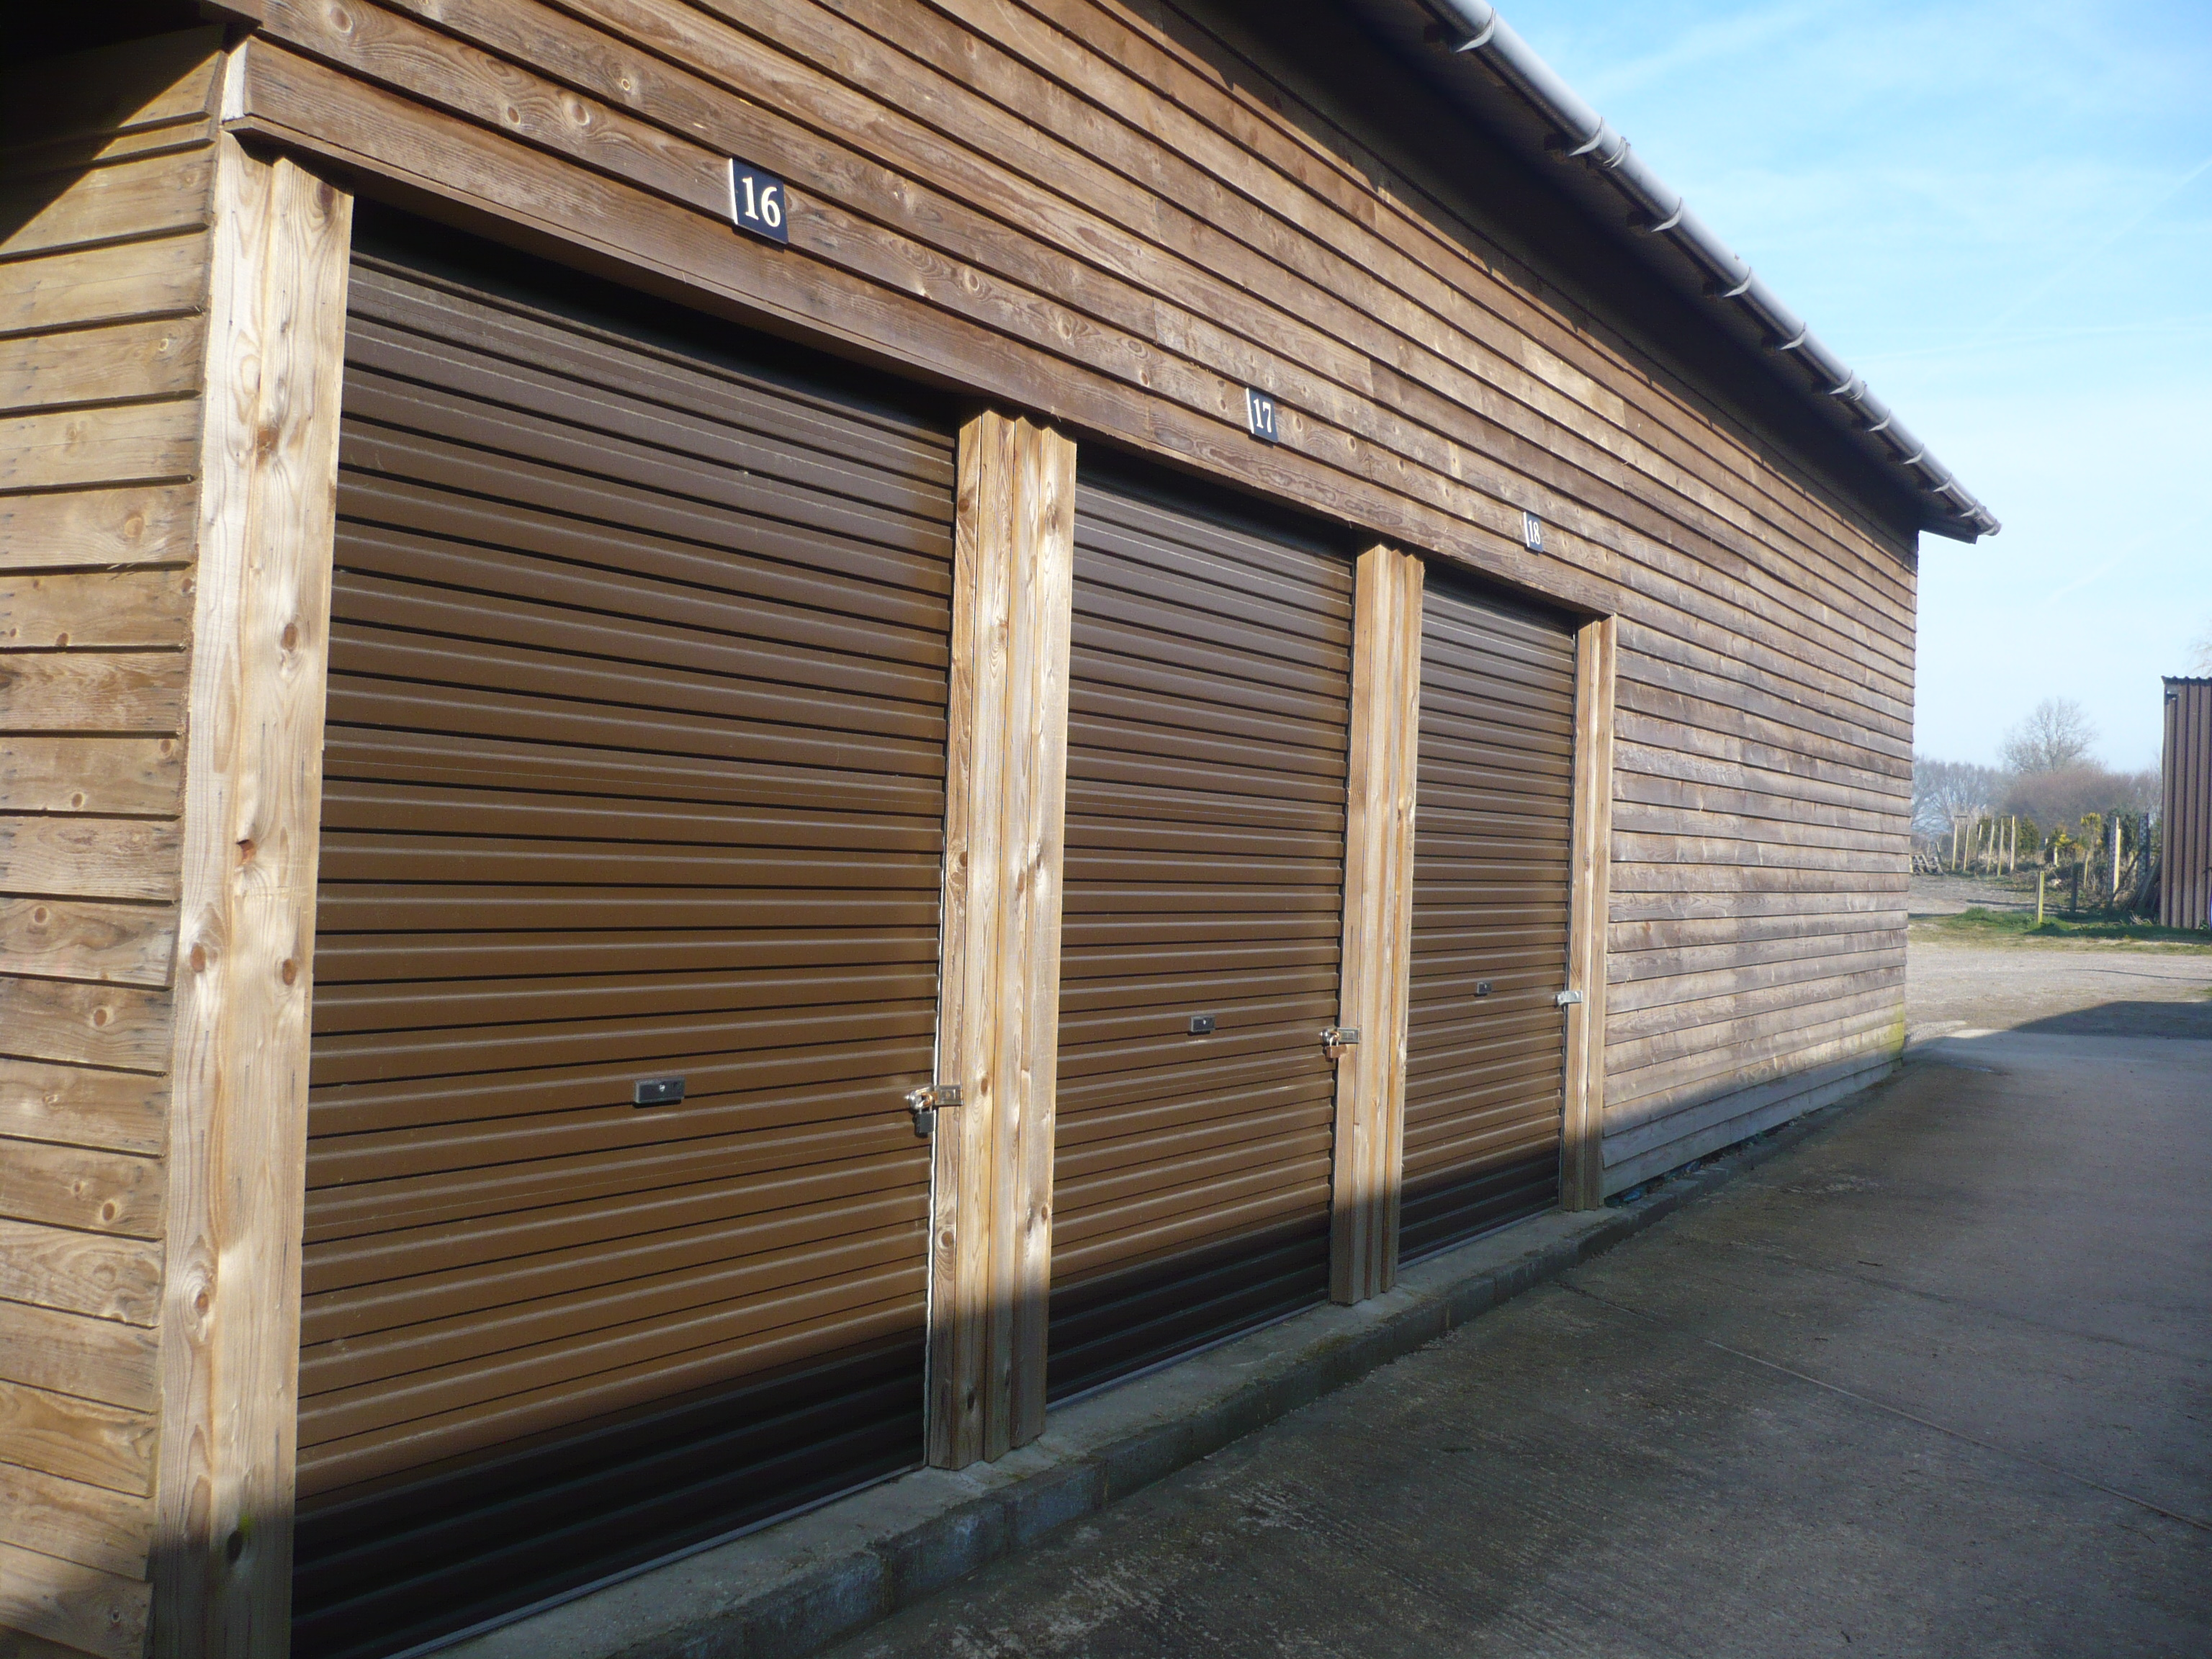 7 x 10 Storage Unit Outside